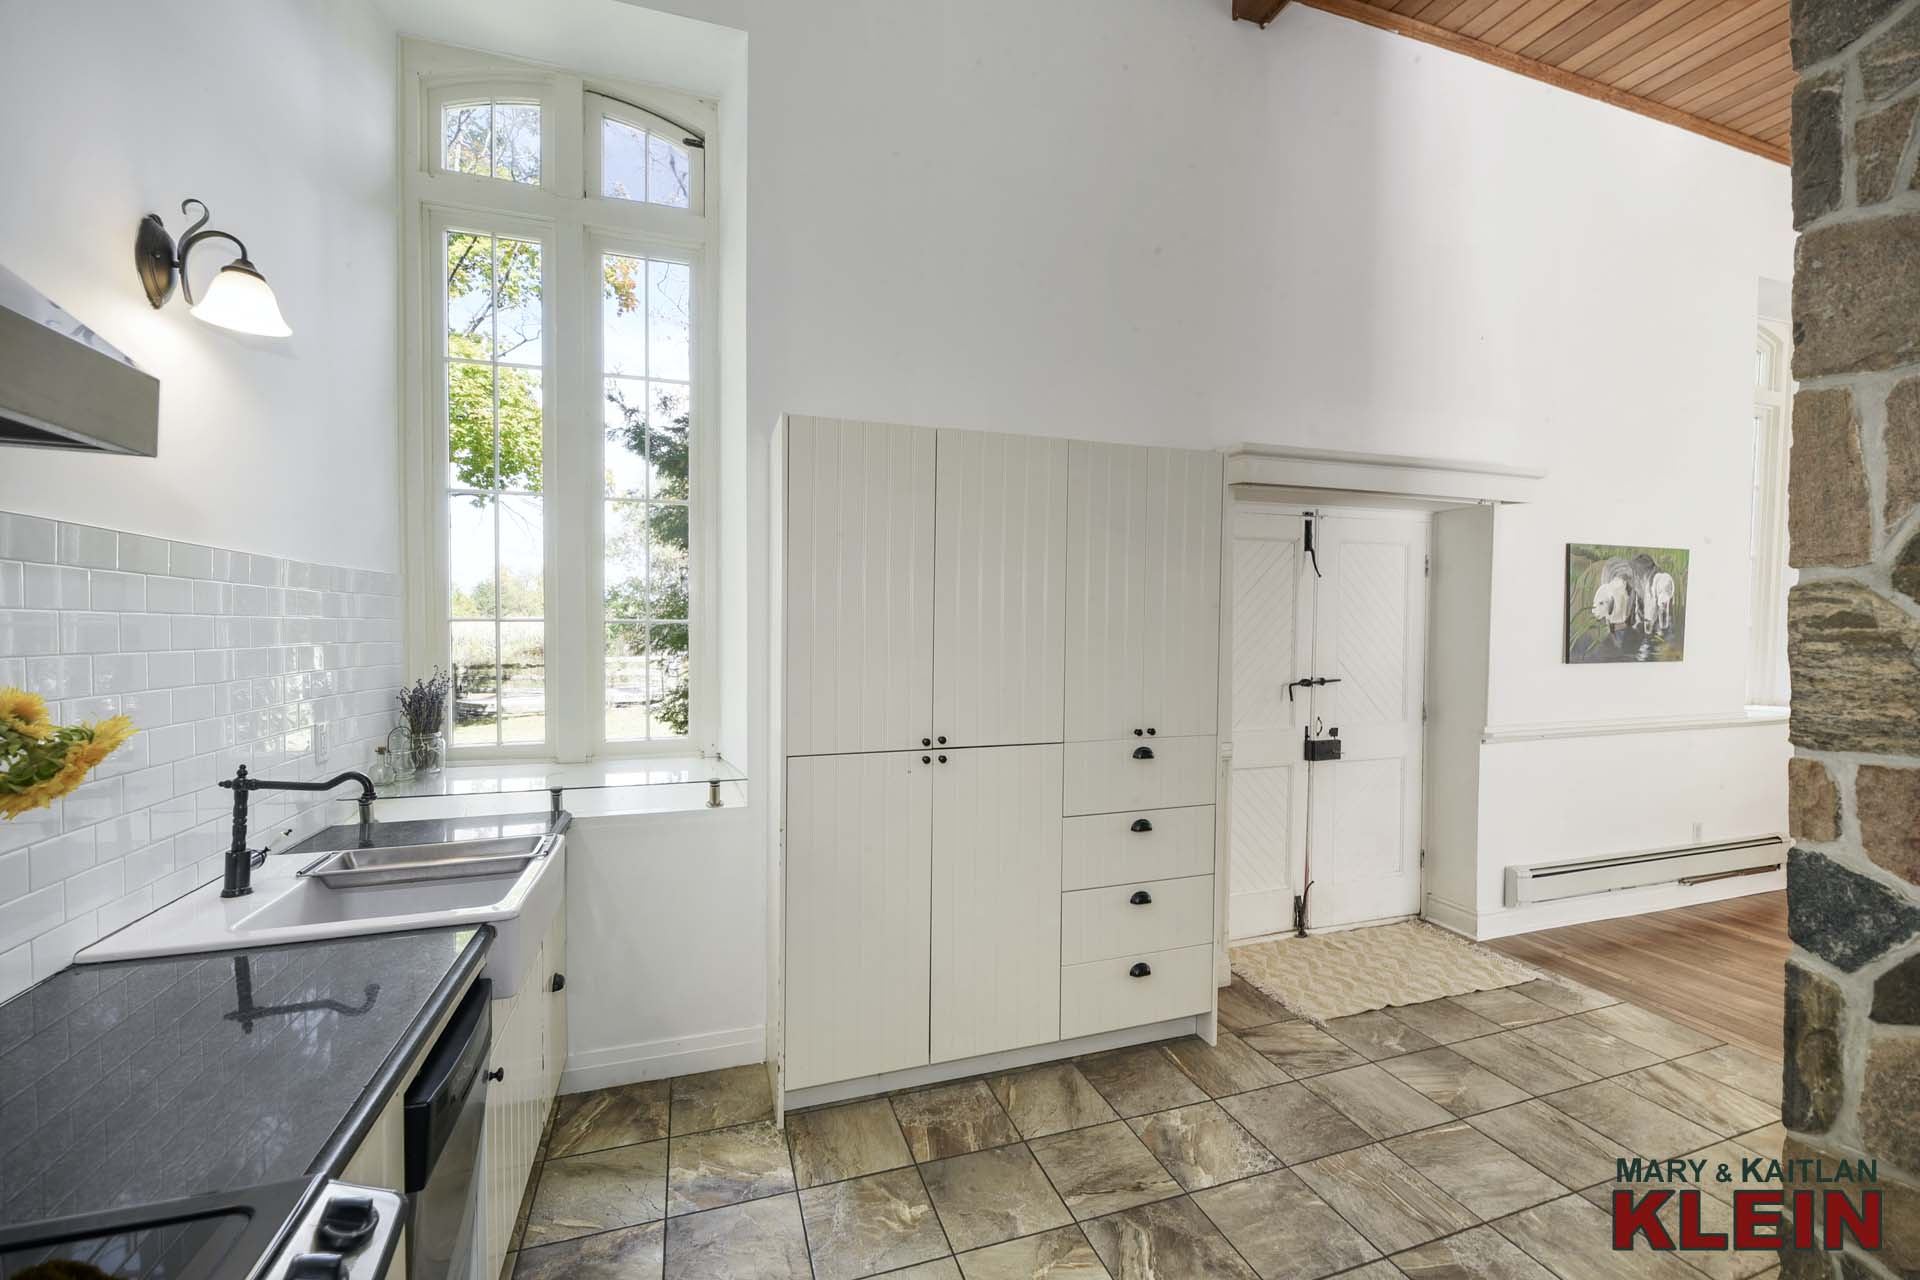 Kitchen - Ceramic flooring, Soaring Ceiling, Stainless Appliances